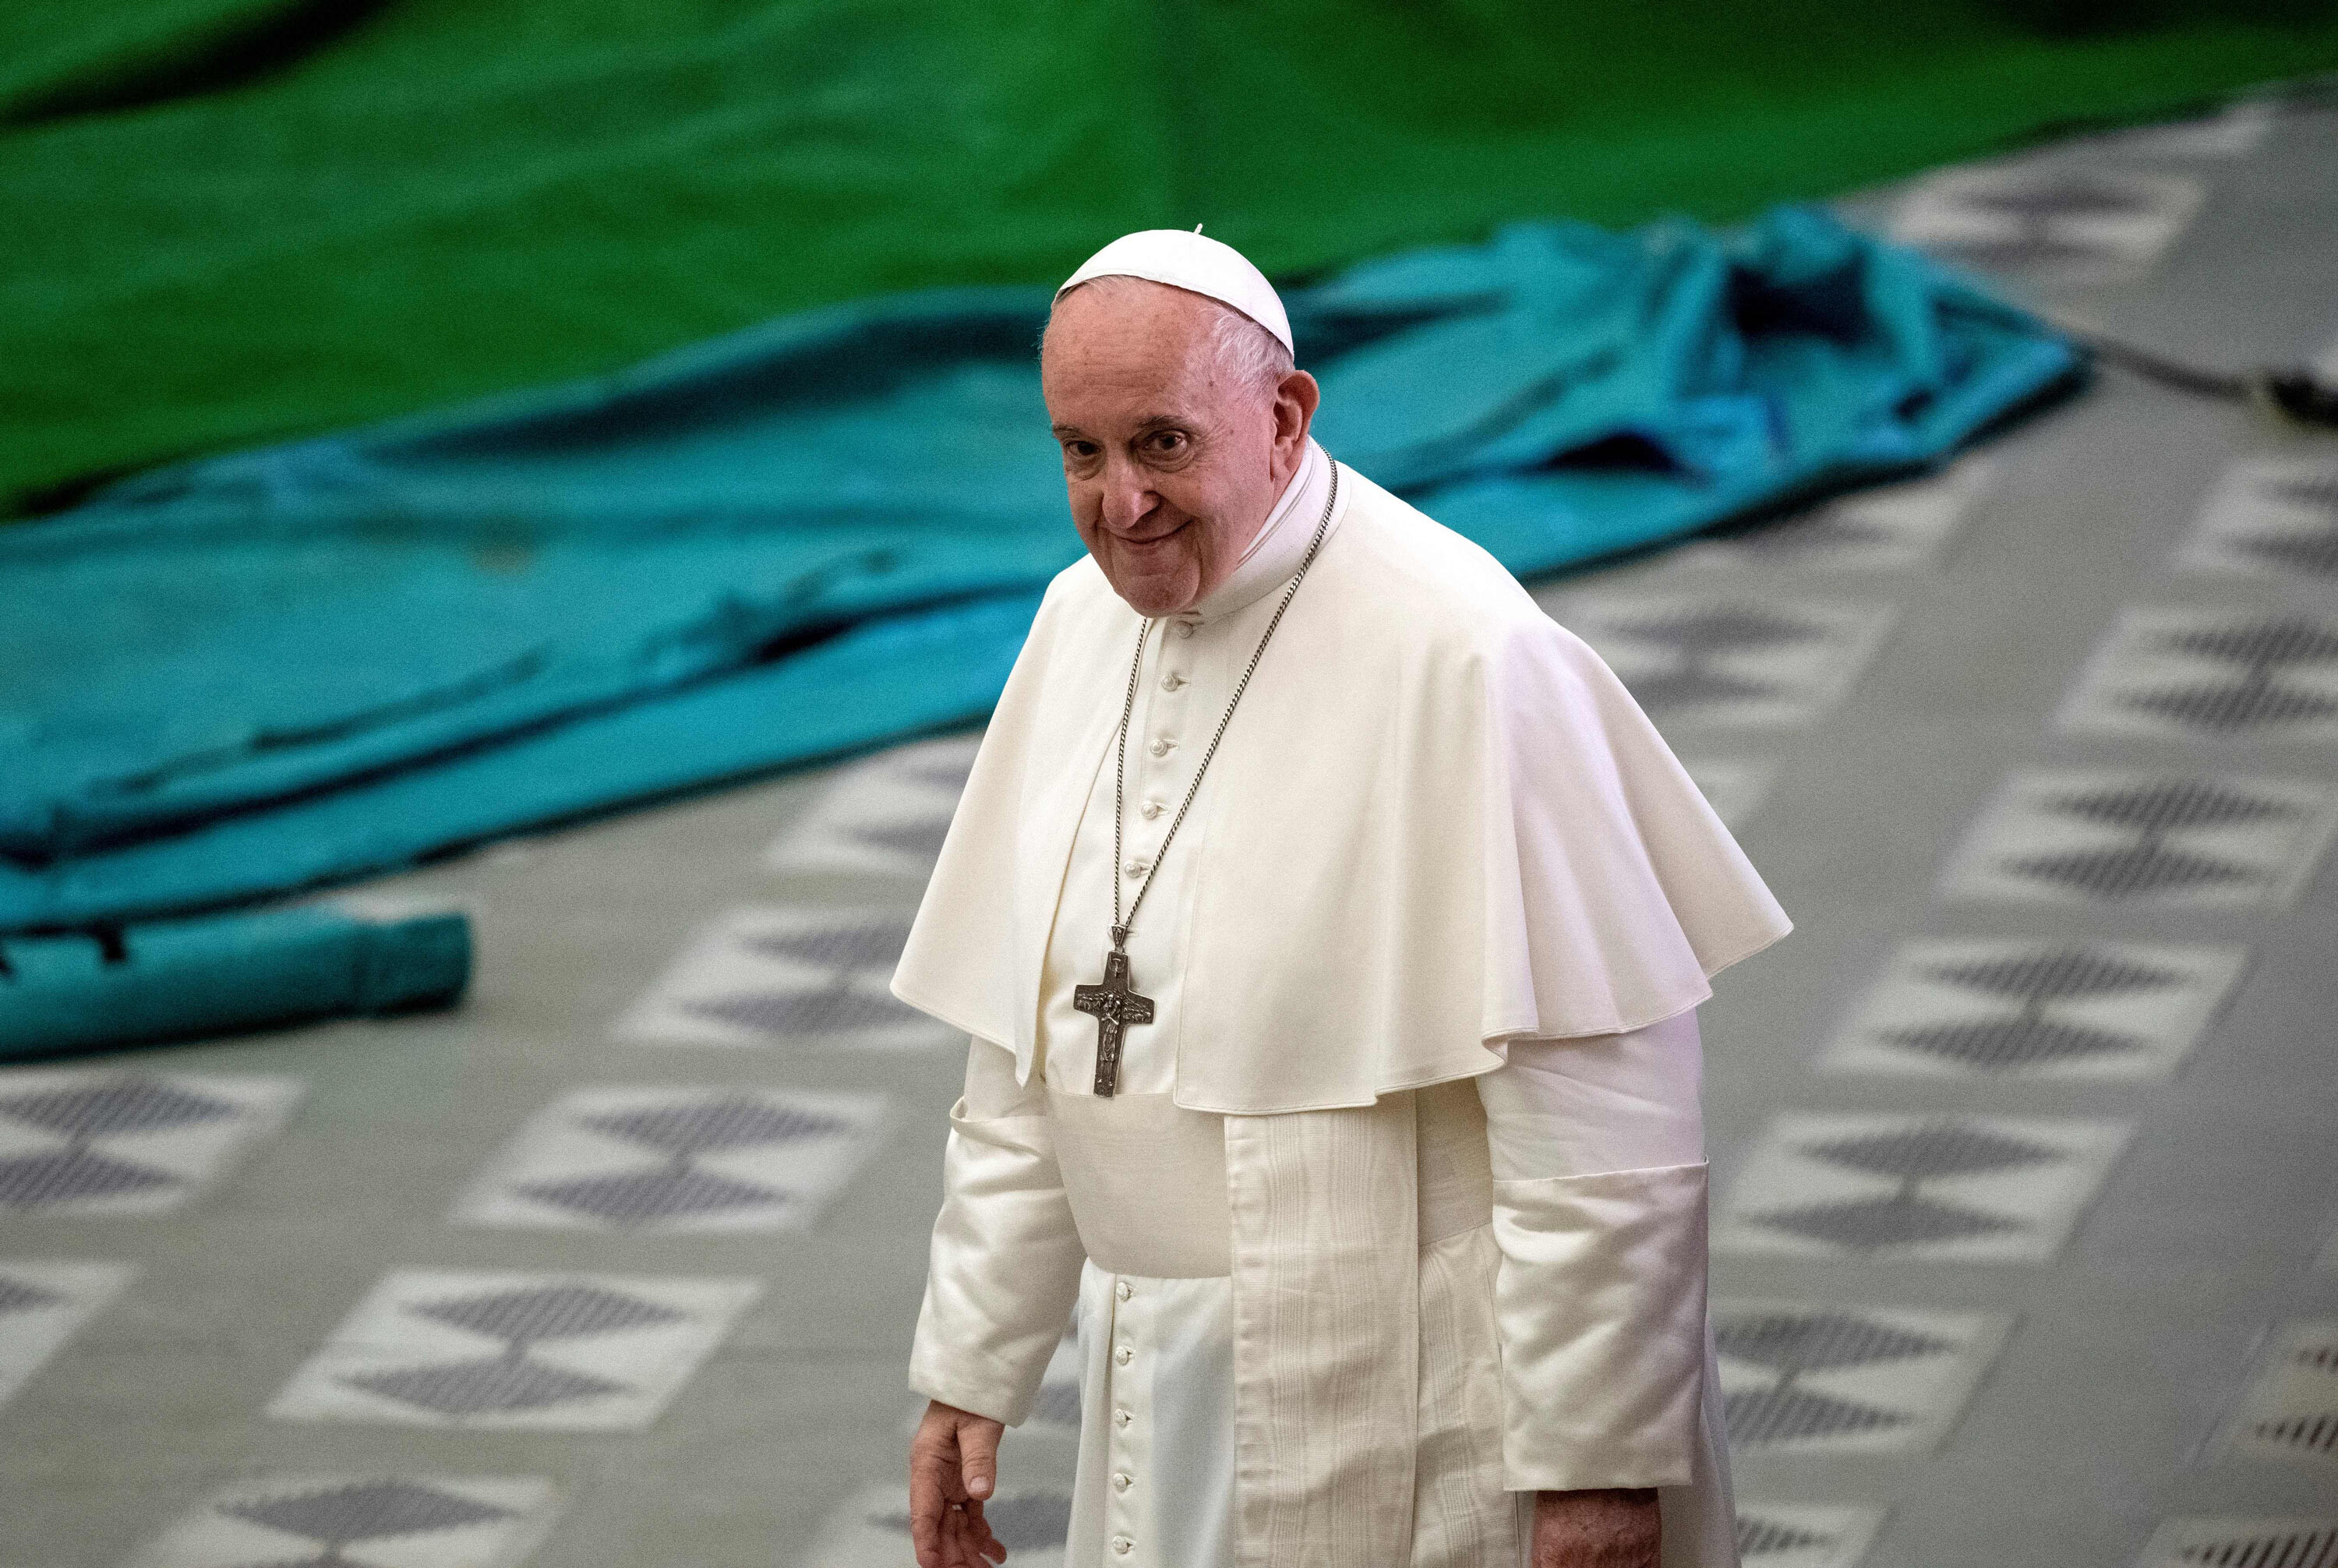 Pope Francis says bishops should be pastors, not politicians in US debate on denying Biden communion over abortion